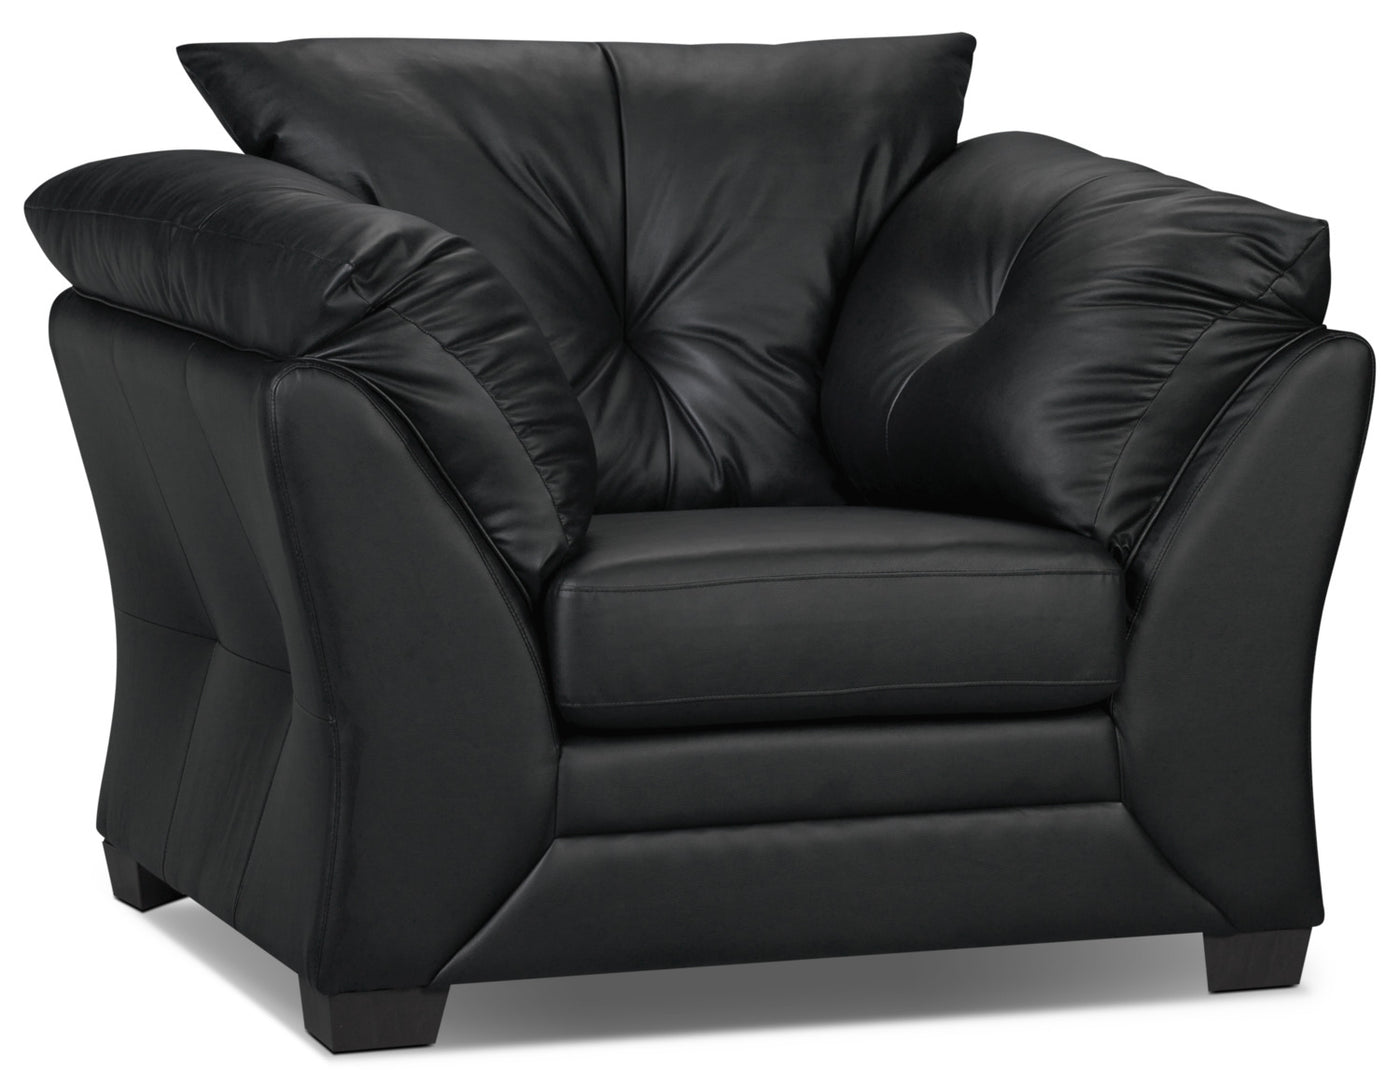 Enjoyable Max Faux Leather Chair Black Andrewgaddart Wooden Chair Designs For Living Room Andrewgaddartcom